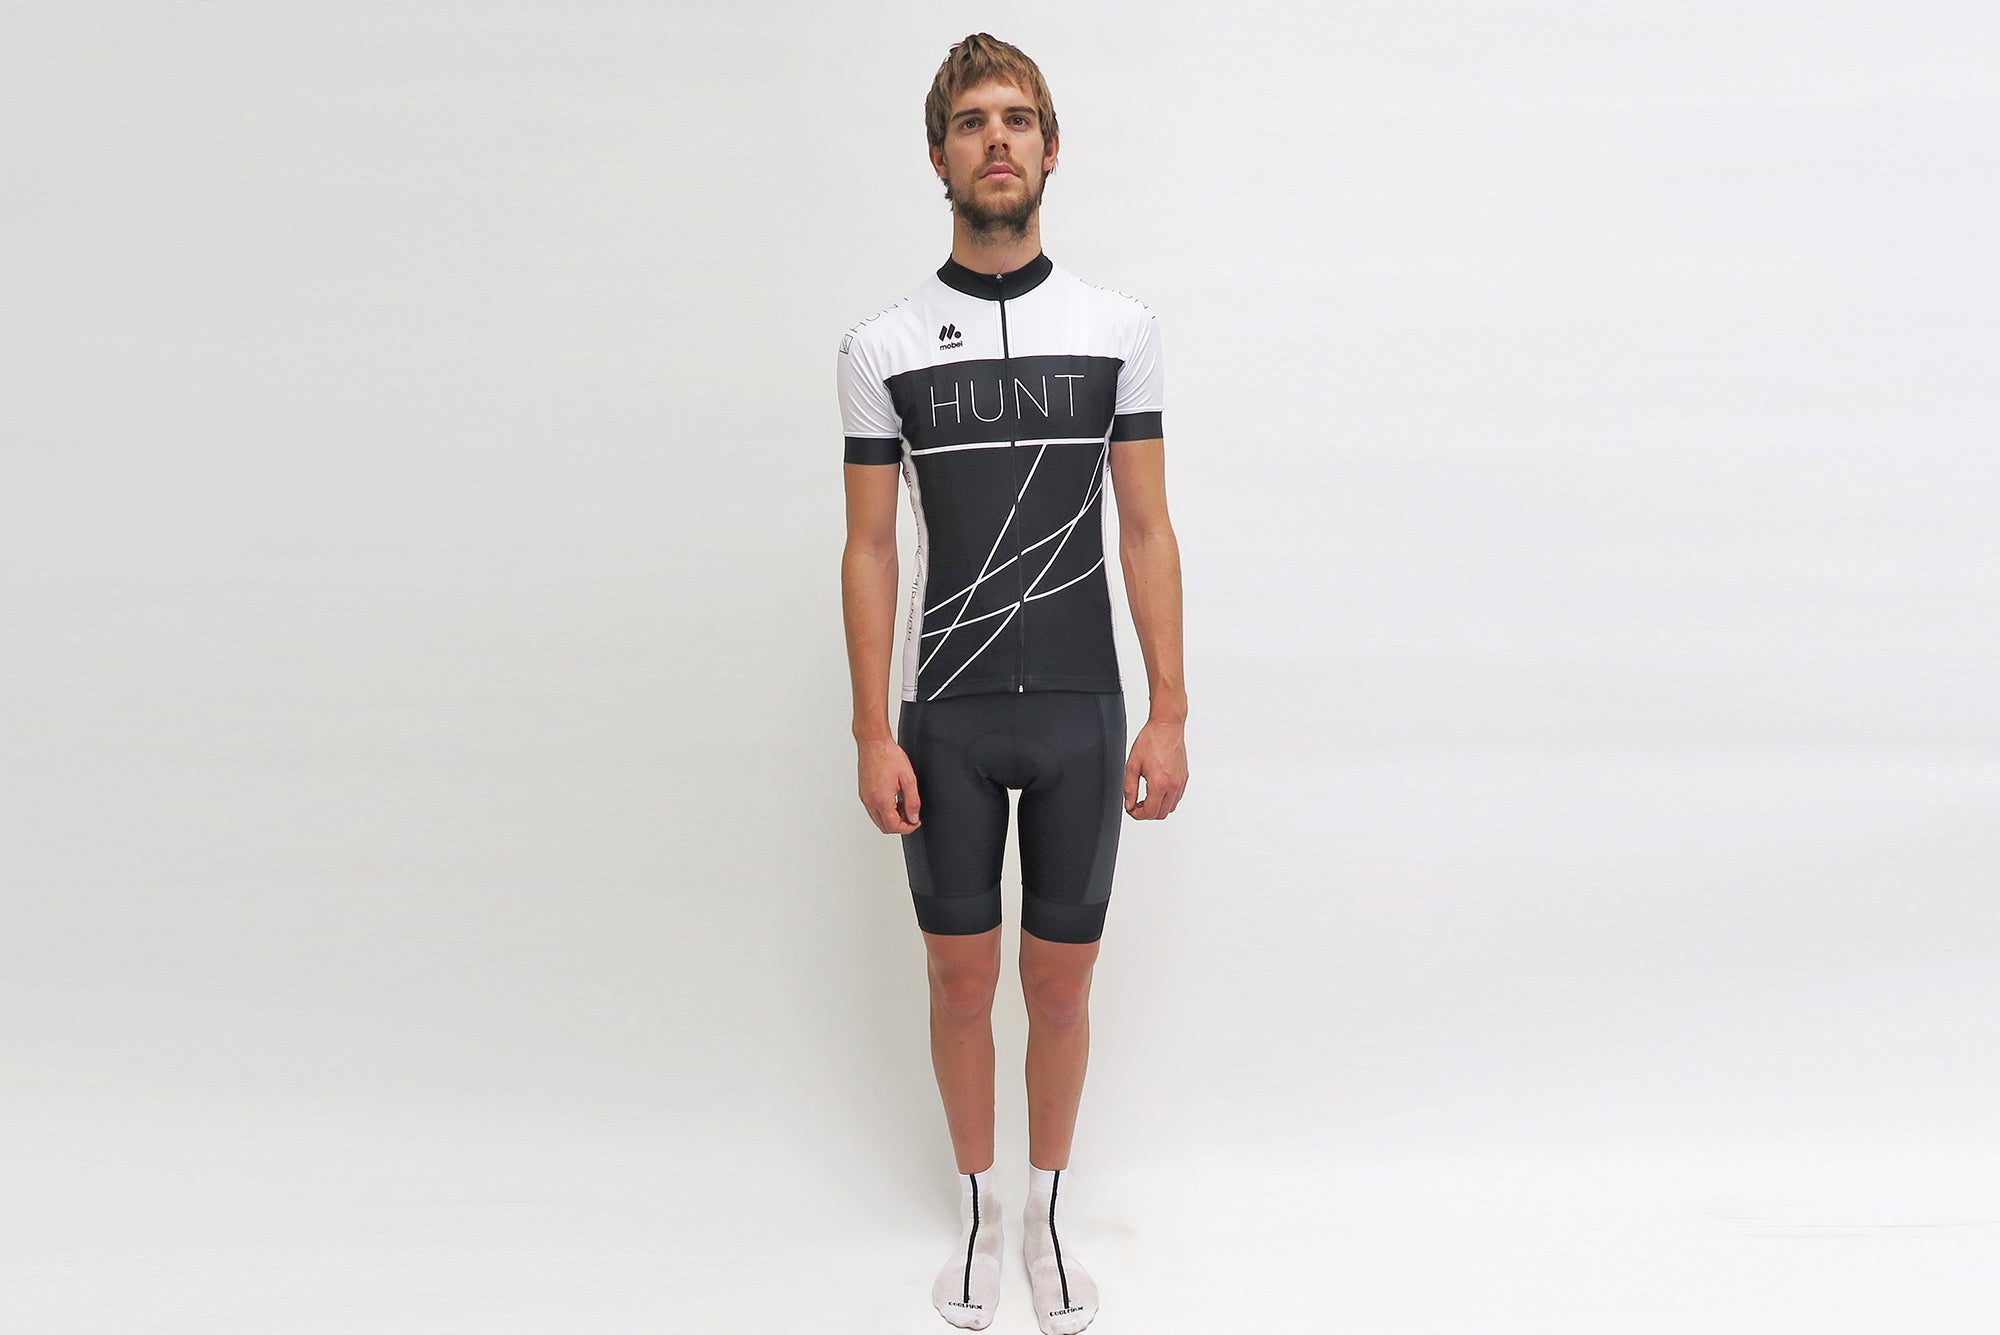 Hunt Race Season Bib Shorts